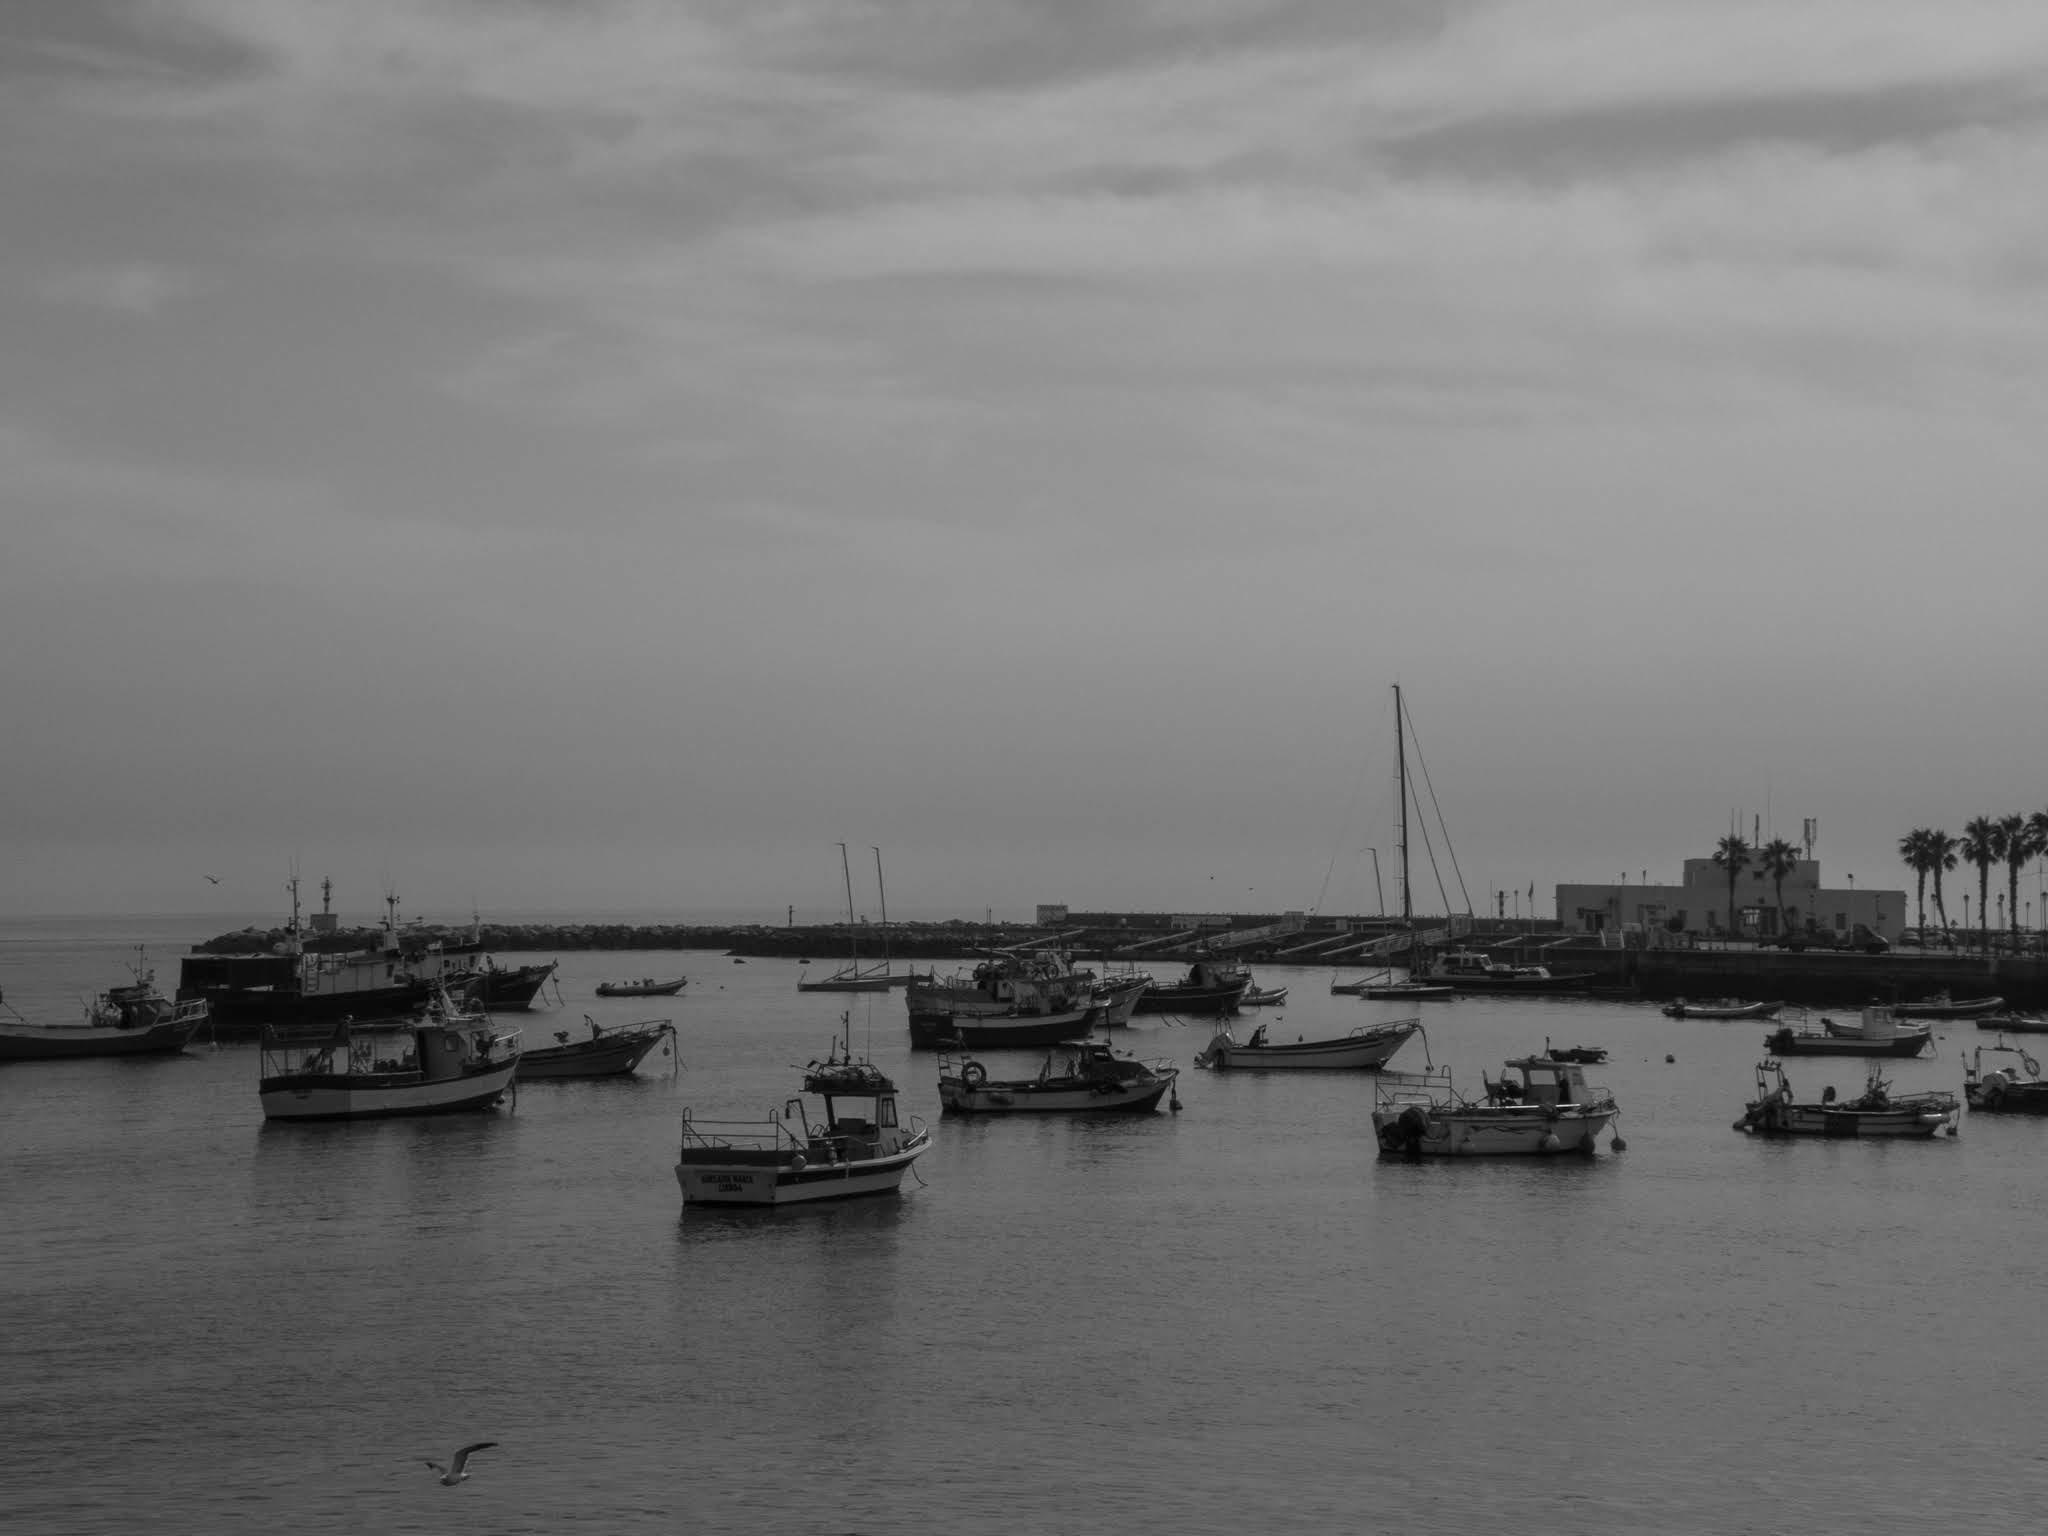 Black and white capture of boats in Cascais bay, Portugal.